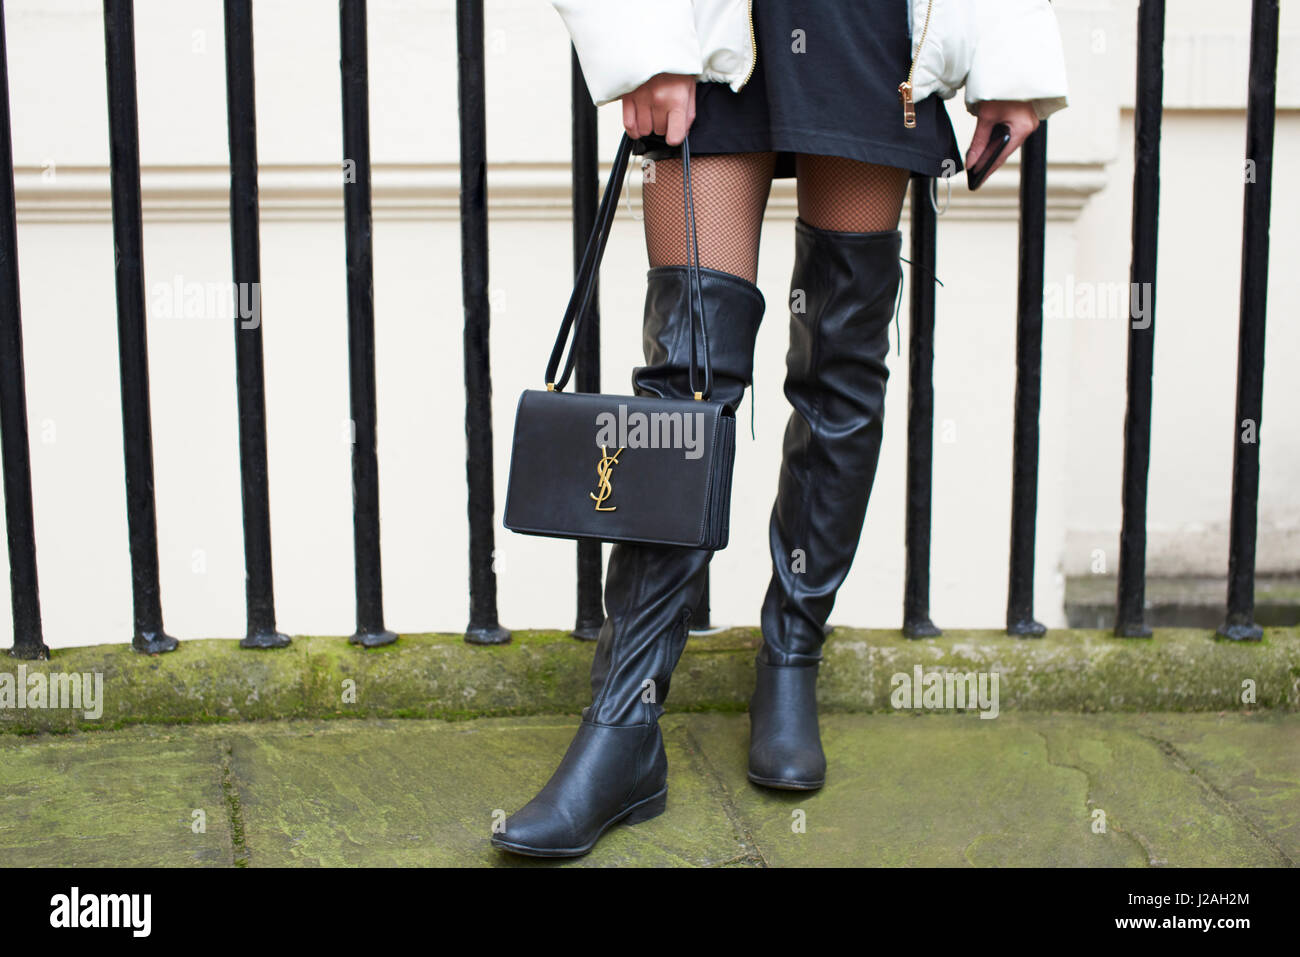 2f06392b8a9 Thigh High Boots Stock Photos & Thigh High Boots Stock Images - Alamy